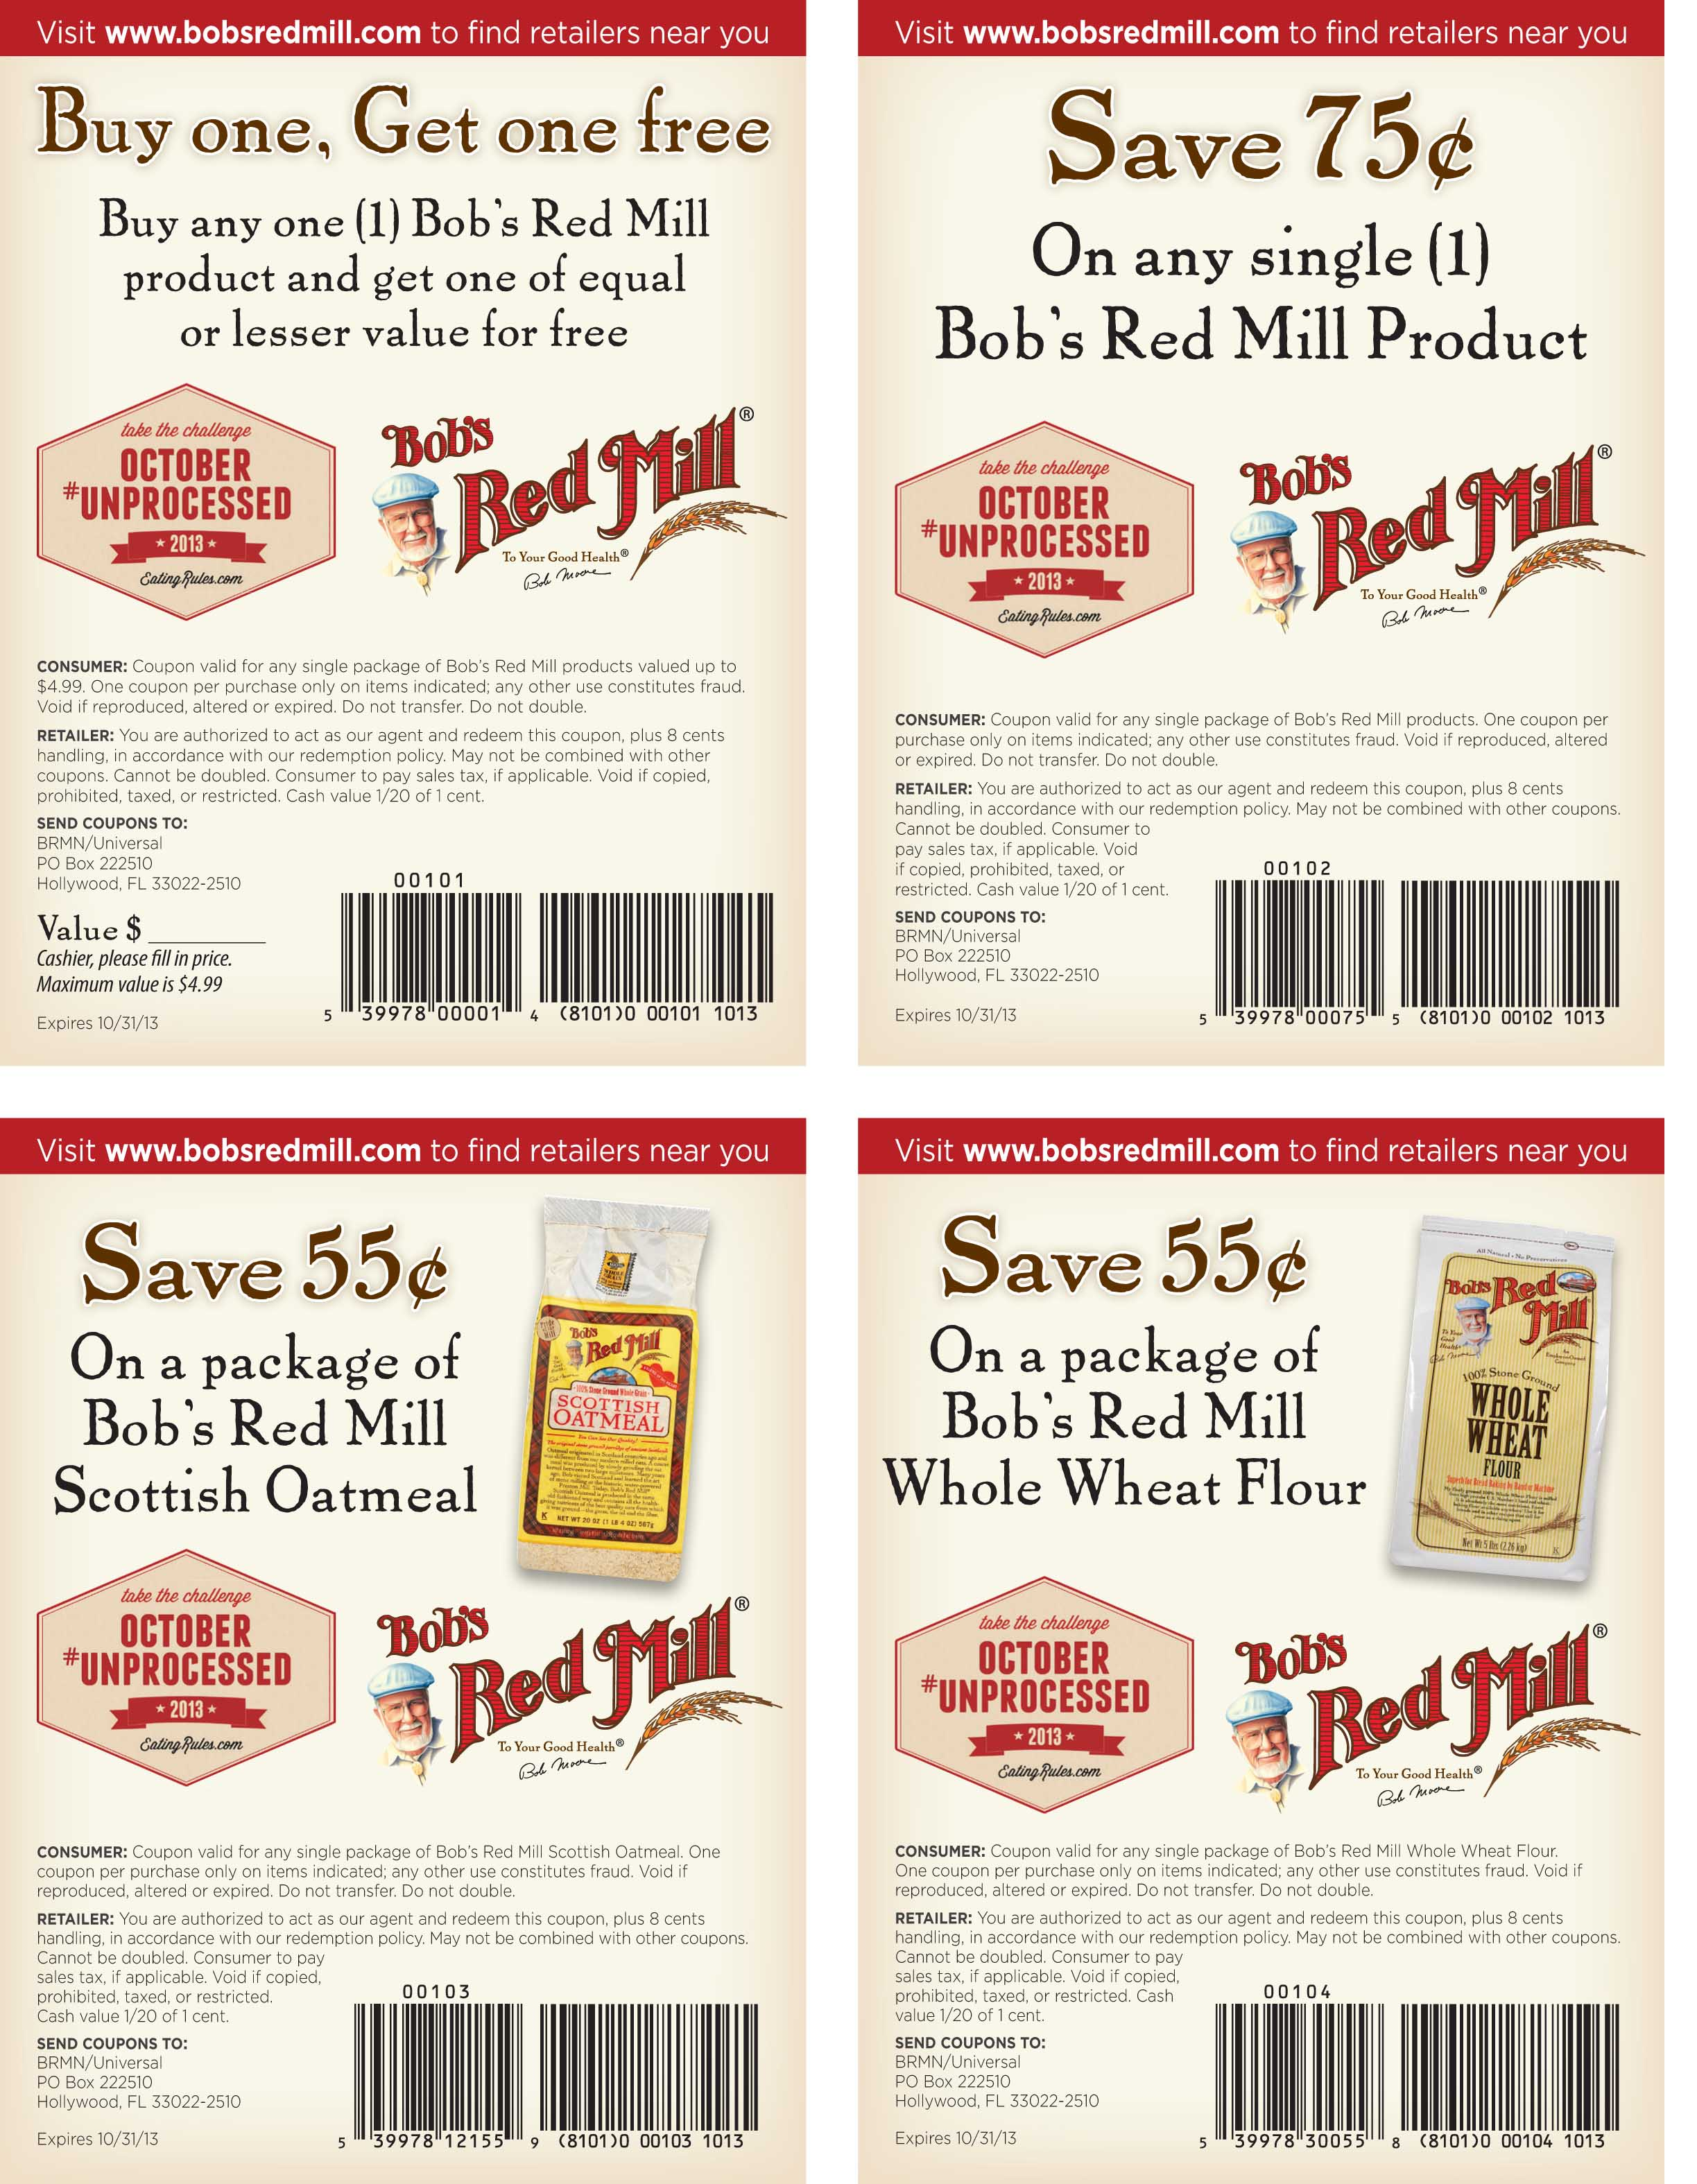 Bob's discount coupons